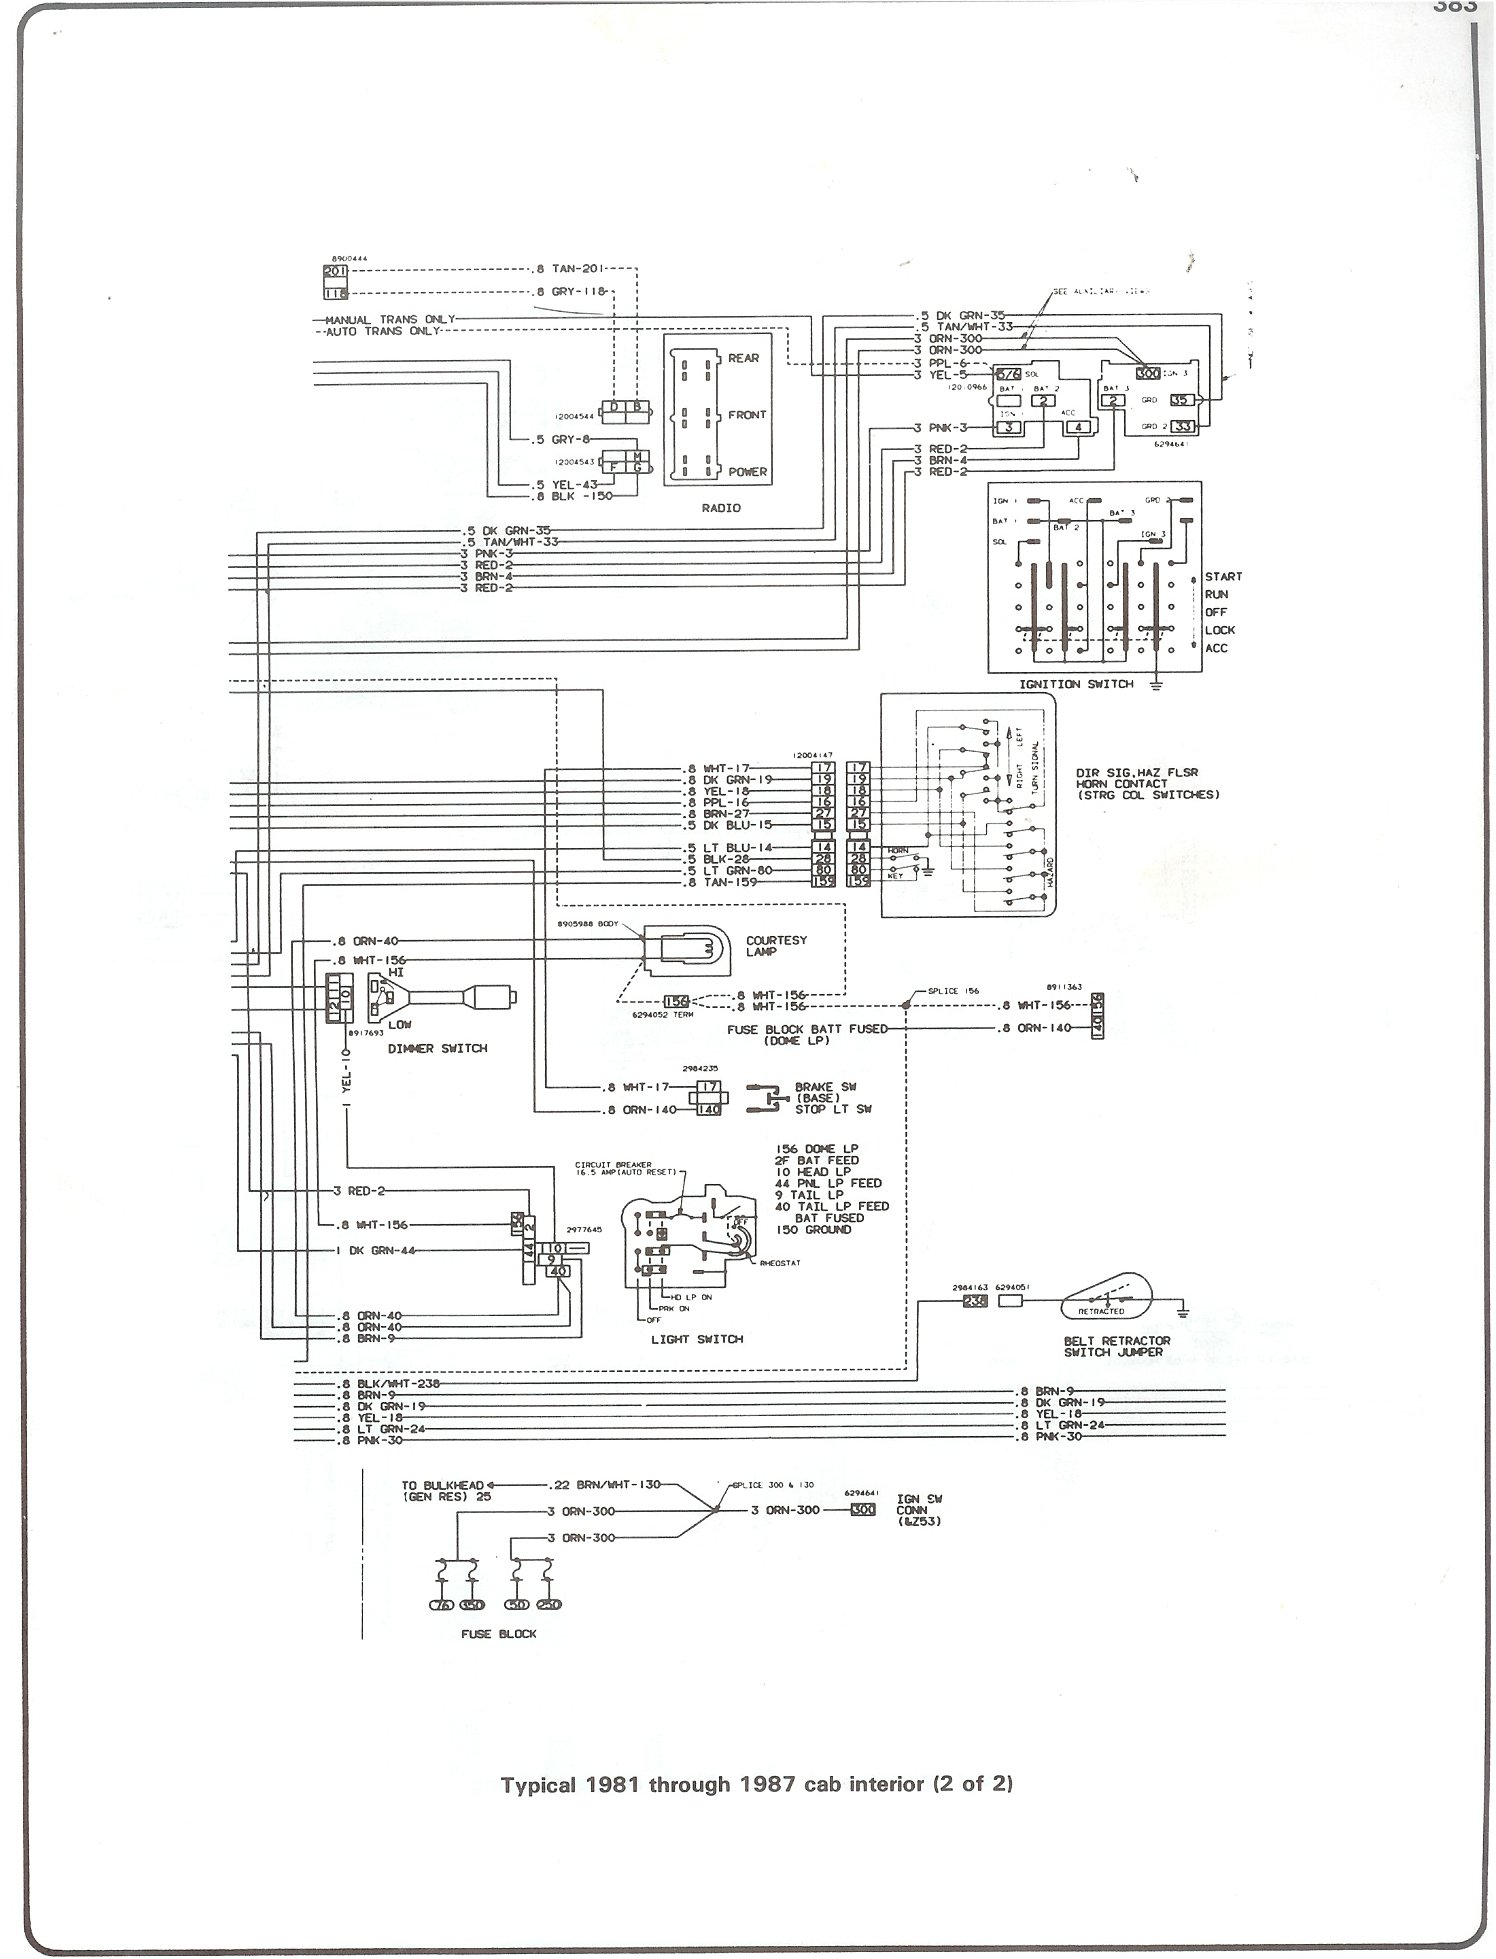 81 87_cab_inter_pg2 complete 73 87 wiring diagrams Chevy Engine Wiring Harness at crackthecode.co